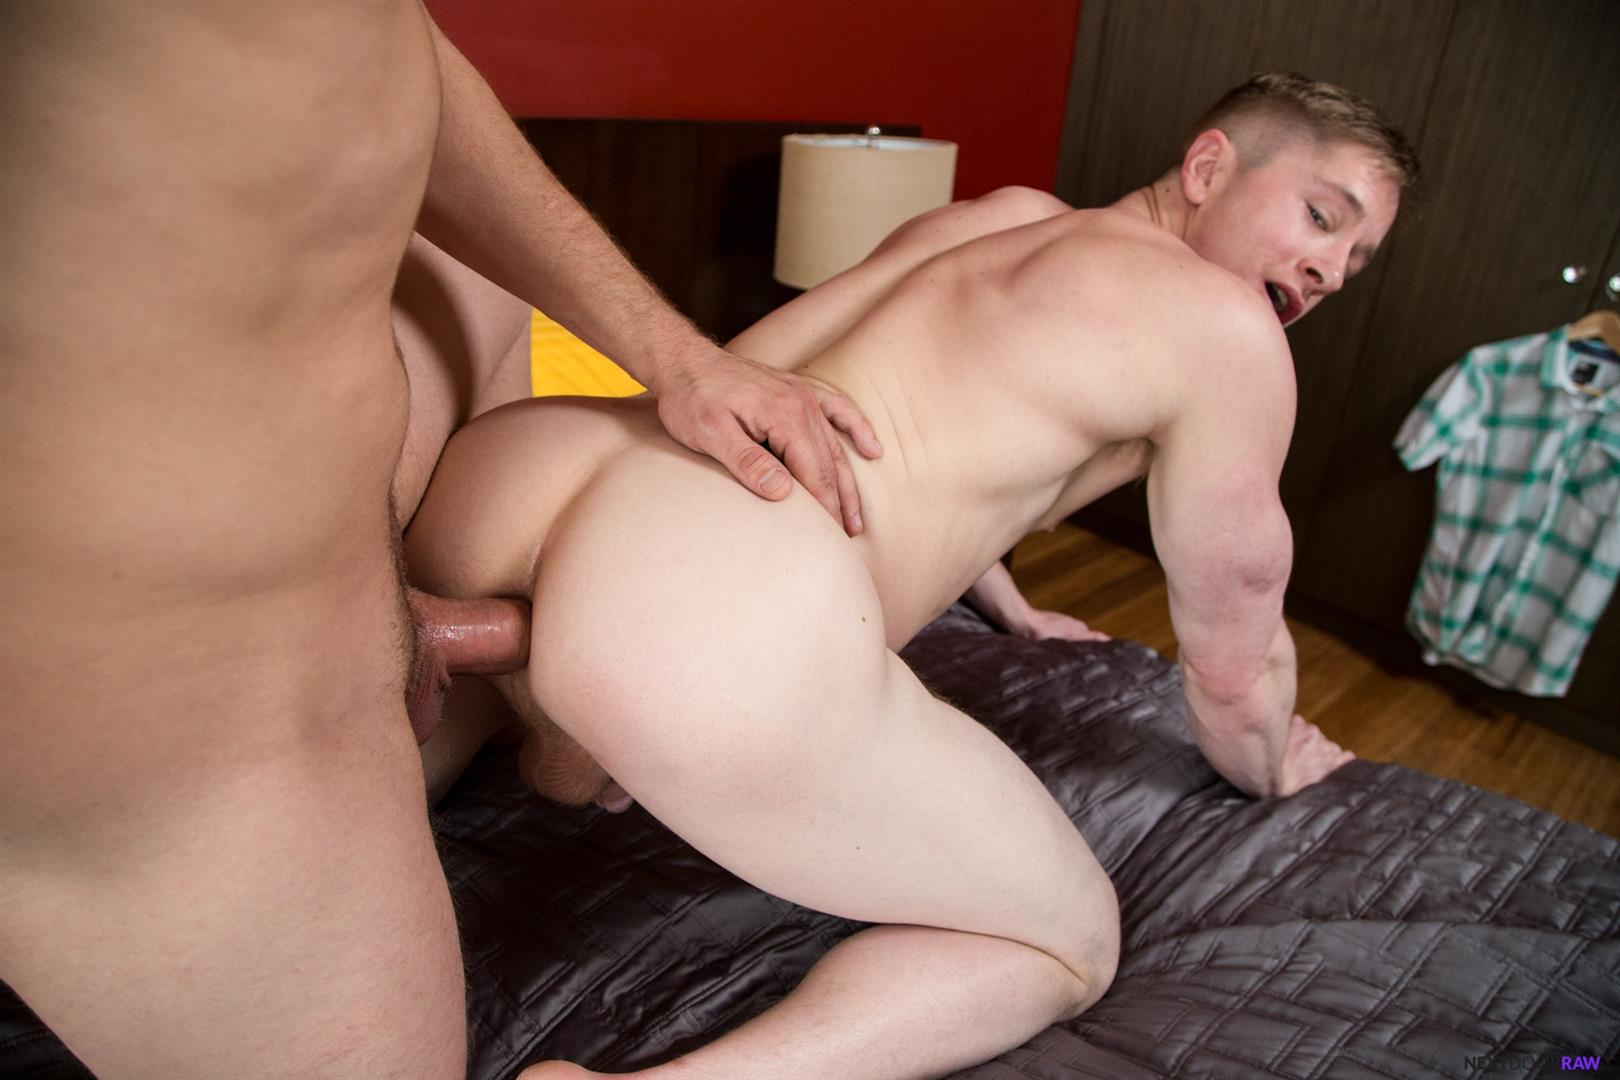 Next-Door-Raw-Bridger-Watts-and-Chris-Blades-muscle-hunks-bareback-sex-12 Muscle Hunk Getting Fucked Bareback By His Brothers Best Friend